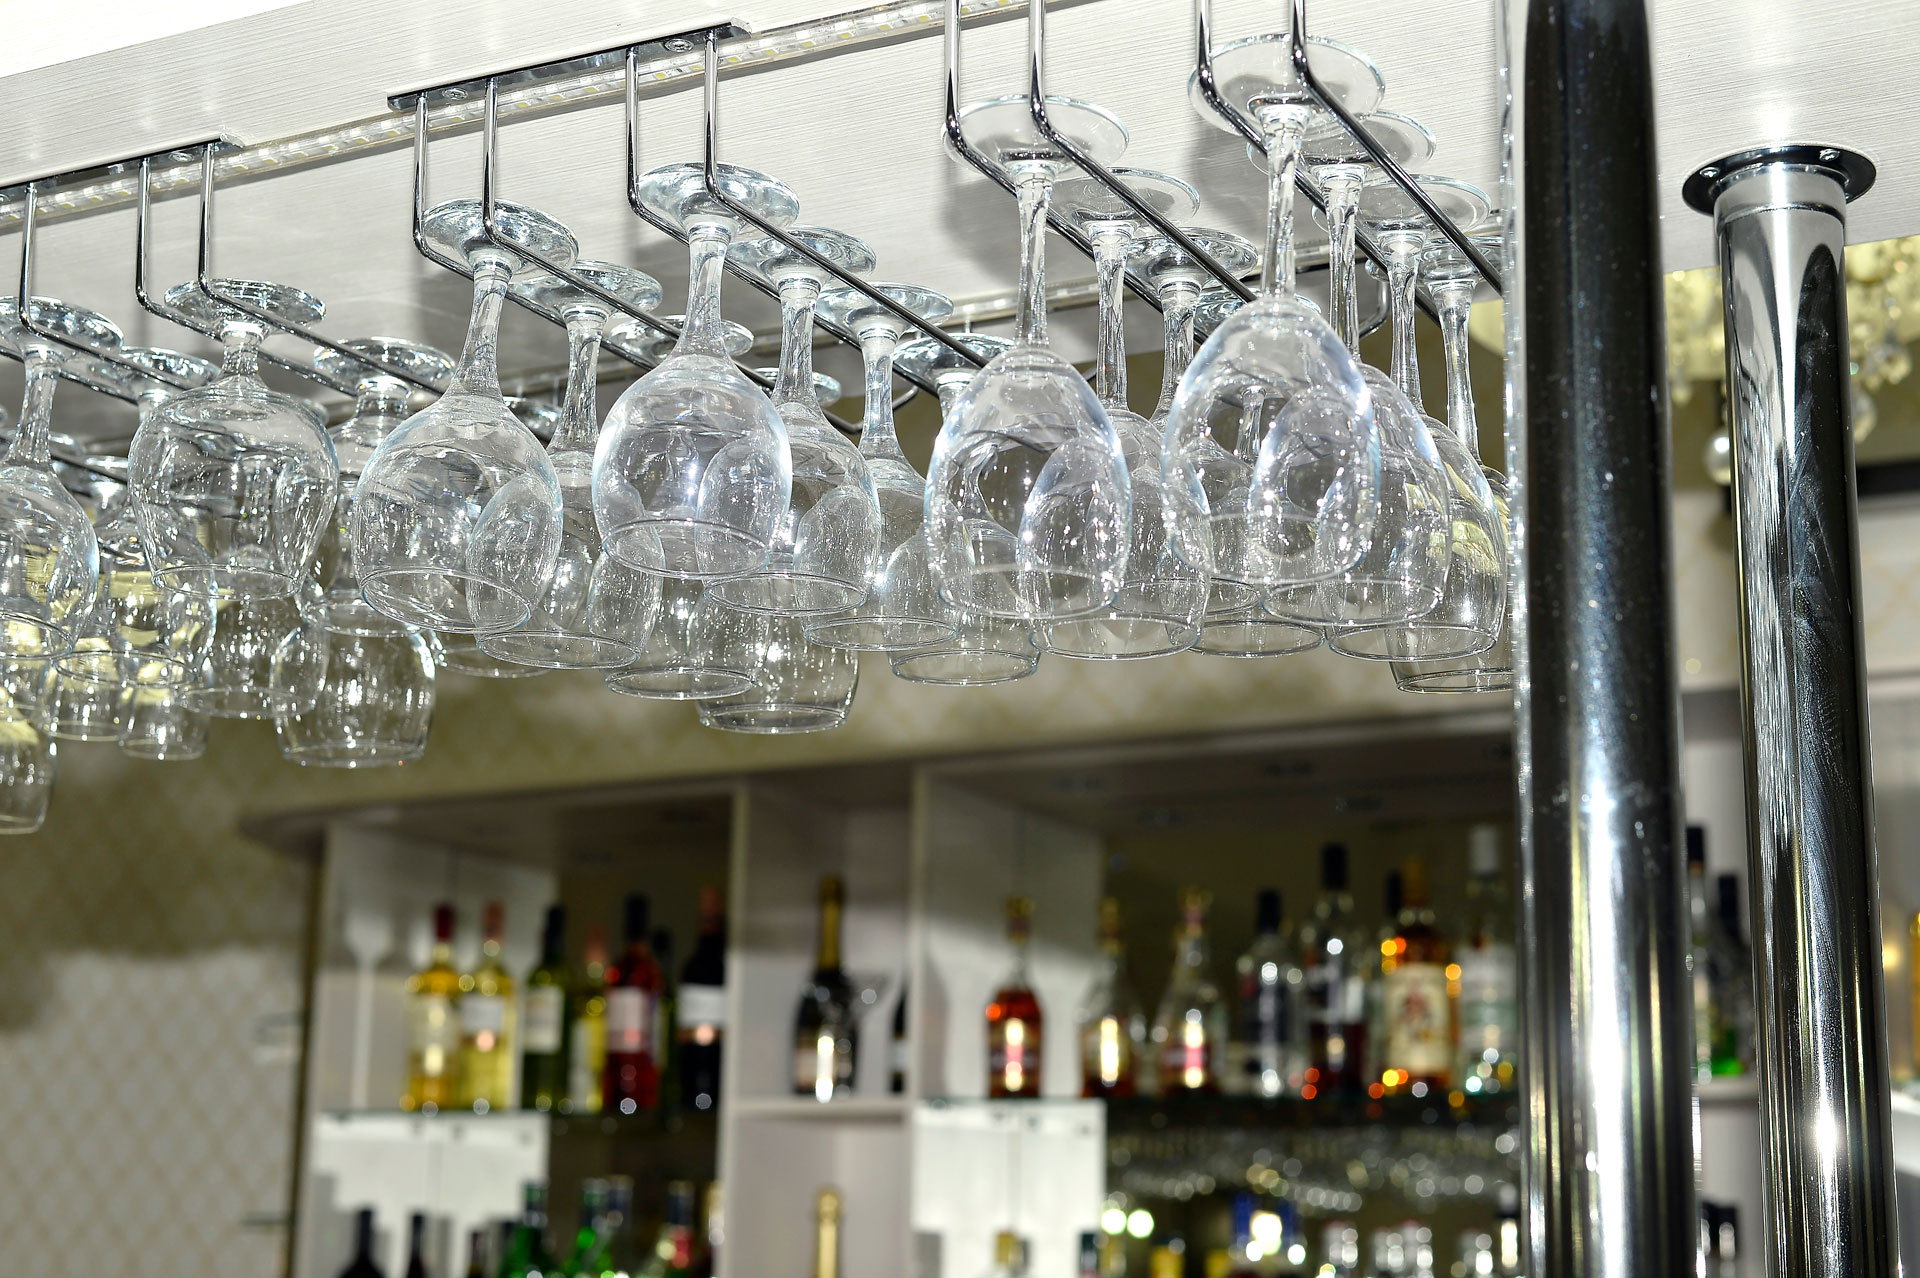 How Can You Make Sure Your Restaurant Dishwasher is Working Perfectly?